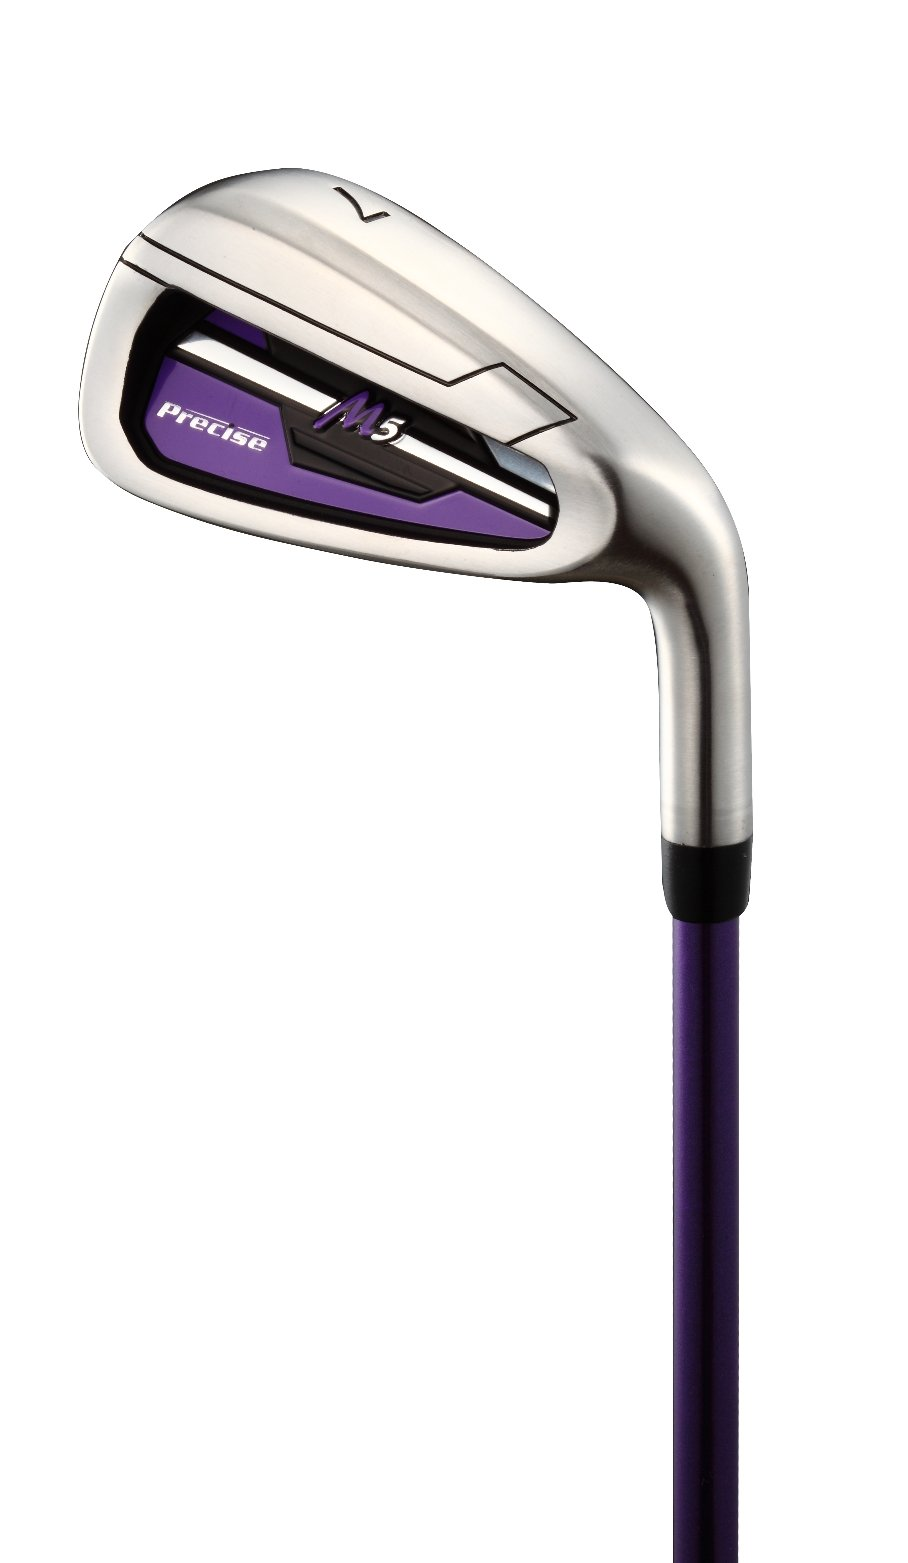 Precise M5 Ladies Womens Complete Right Handed Golf Clubs Set Includes Titanium Driver, S.S. Fairway, S.S. Hybrid, S.S. 5-PW Irons, Putter, Stand Bag, 3 H/C's Purple (Right Hand) by PreciseGolf Co. (Image #5)